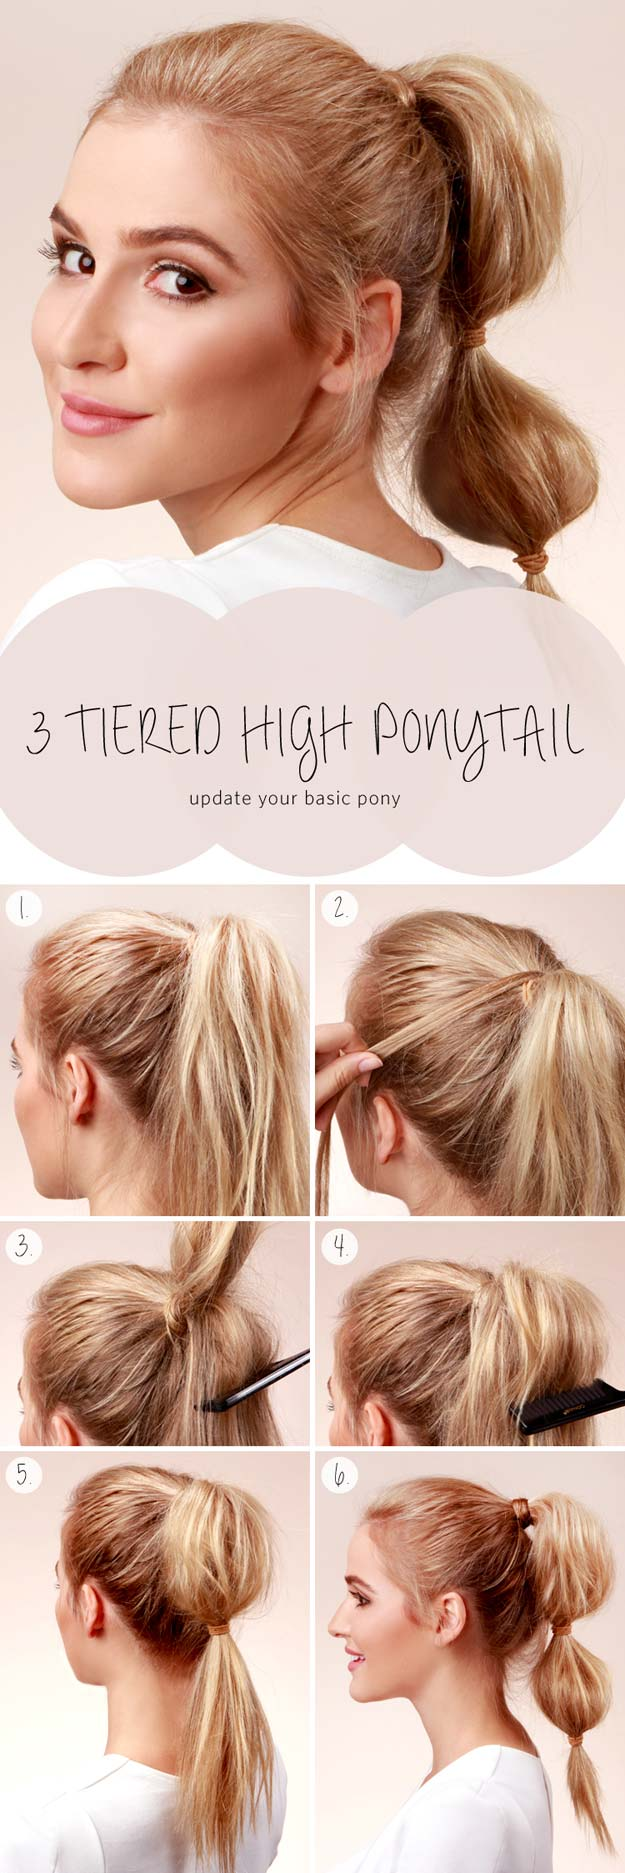 Best Hairstyles for Long Hair - Three Tiered High Ponytail- Step by Step Tutorials for Easy Curls, Updo, Half Up, Braids and Lazy Girl Looks. Prom Ideas, Special Occasion Hair and Braiding Instructions for Teens, Teenagers and Adults, Women and Girls http://diyprojectsforteens.com/best-hairstyles-long-hair